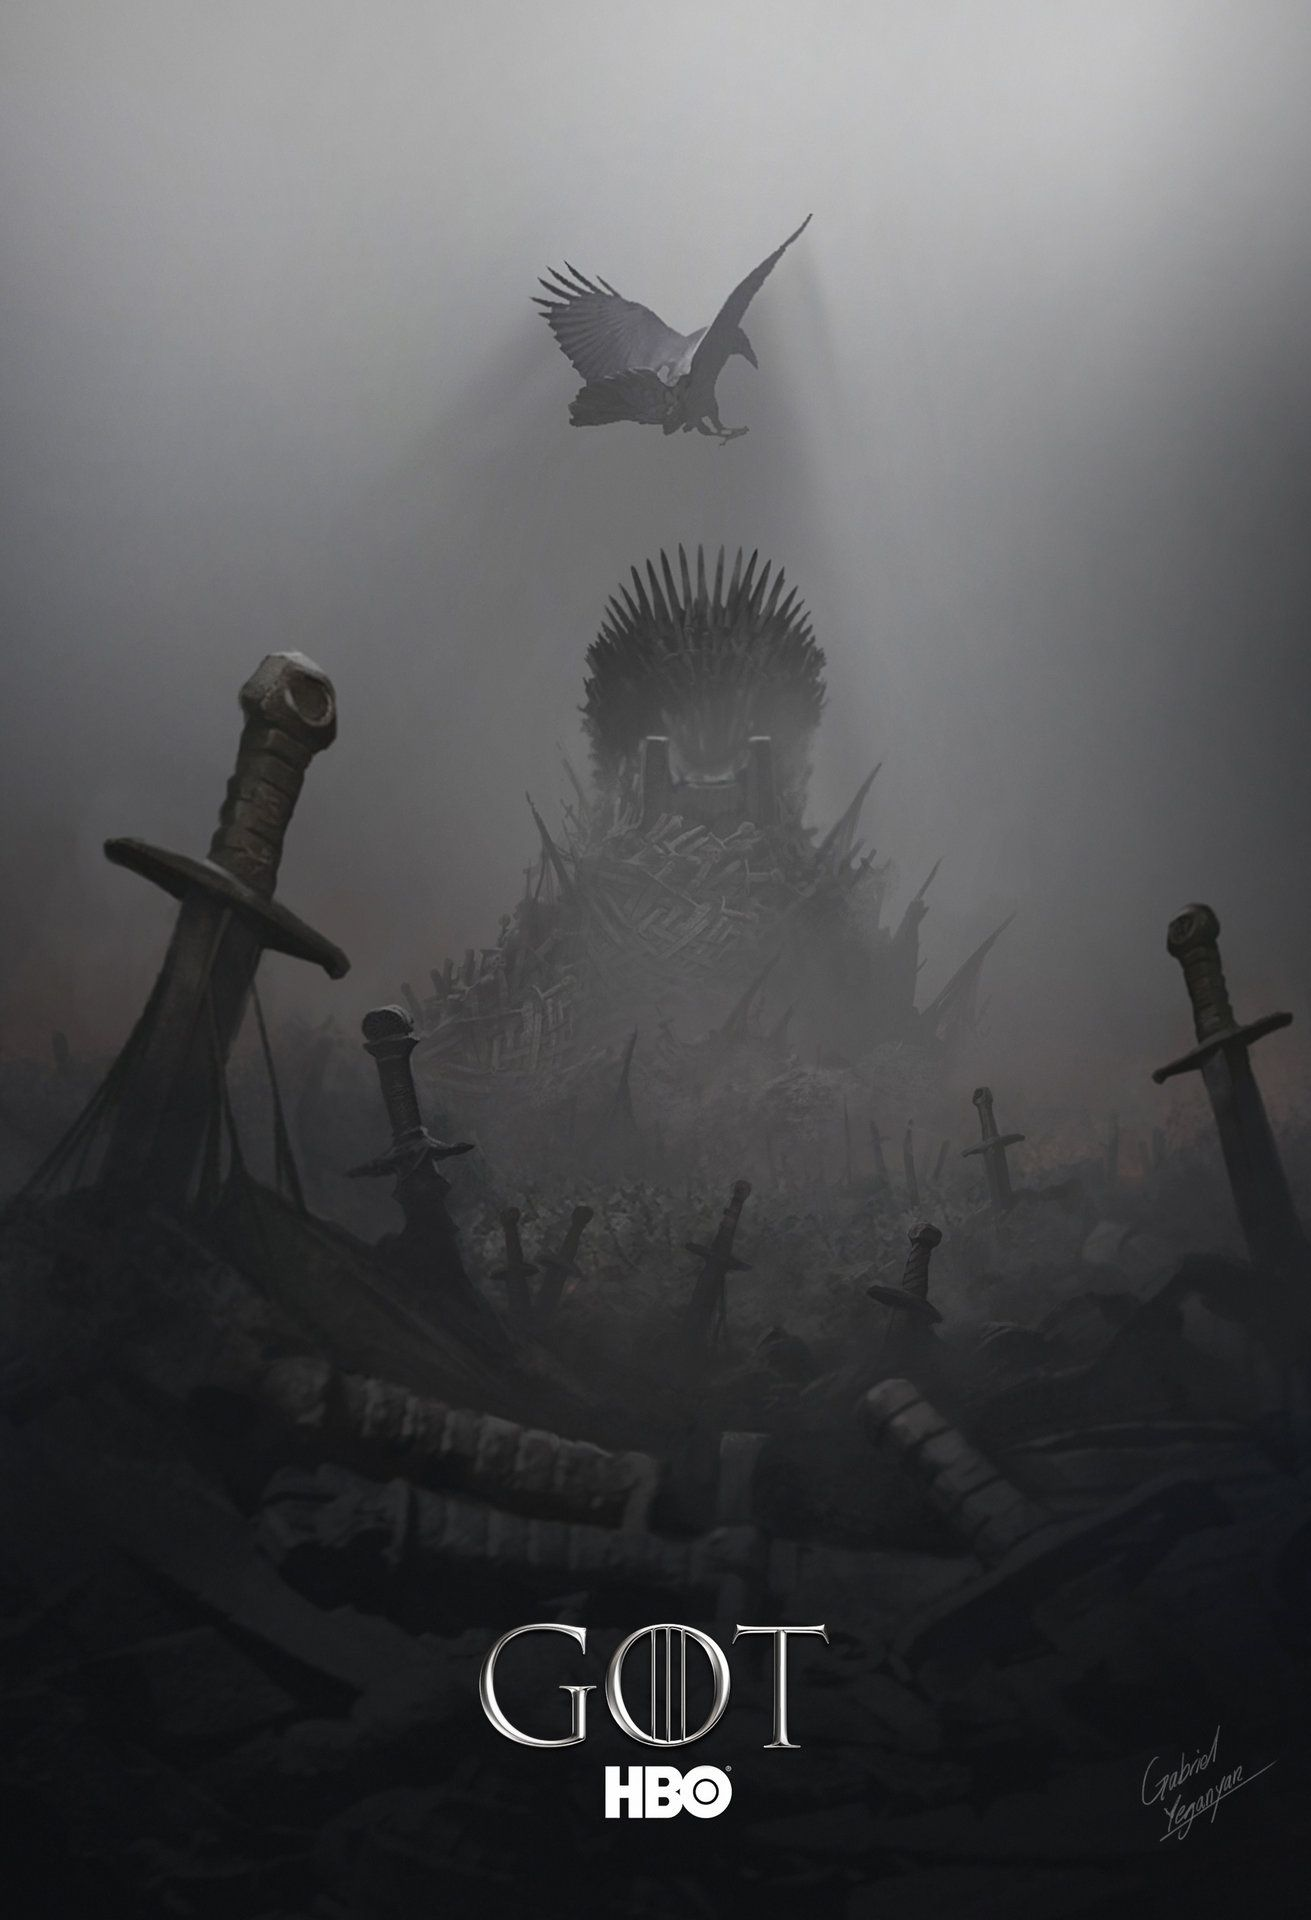 Of thrones game photo cover